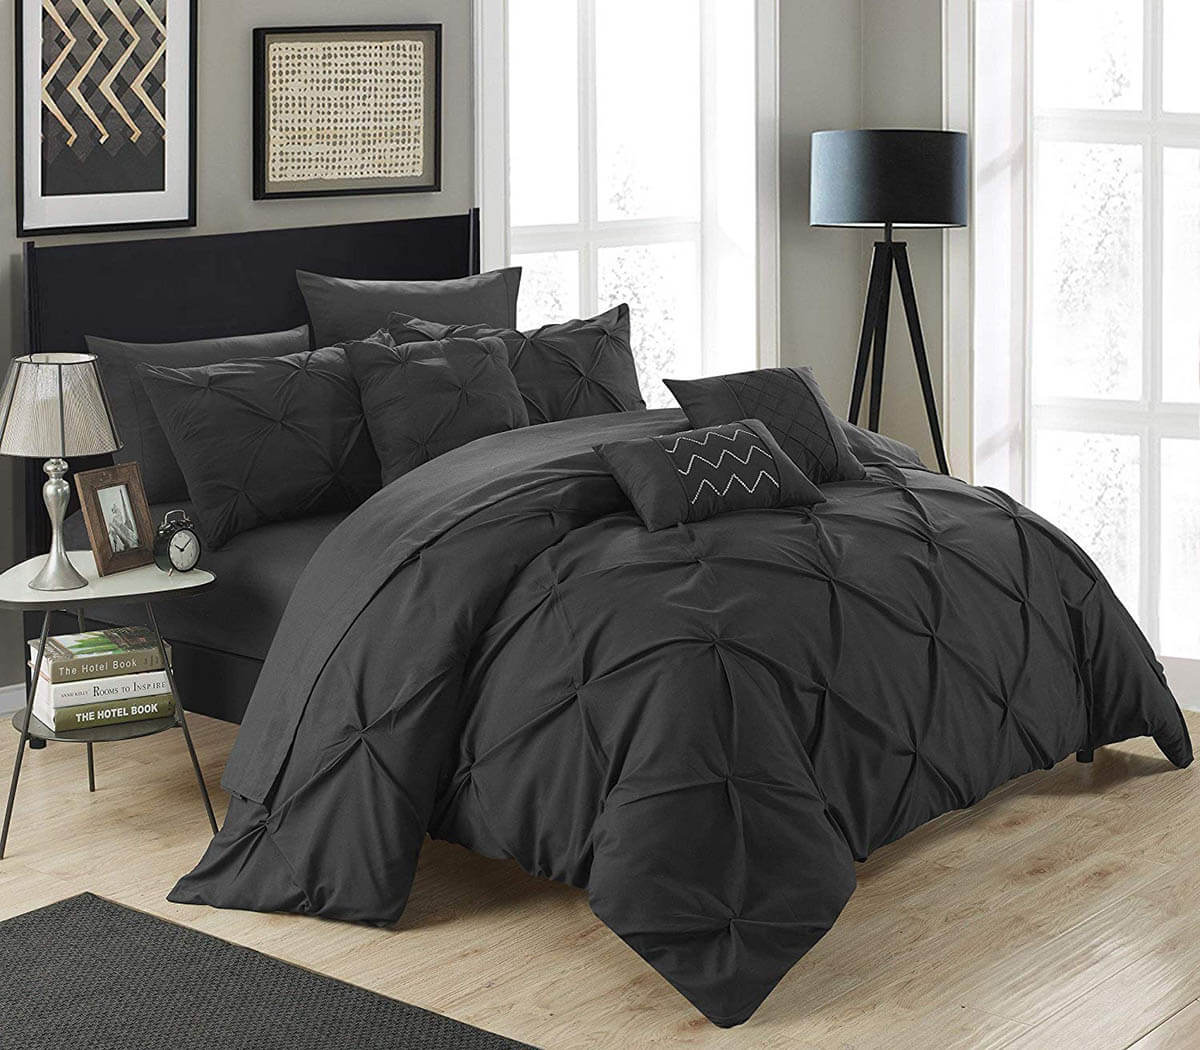 22 Best Black Bedroom Ideas And Designs For 2020